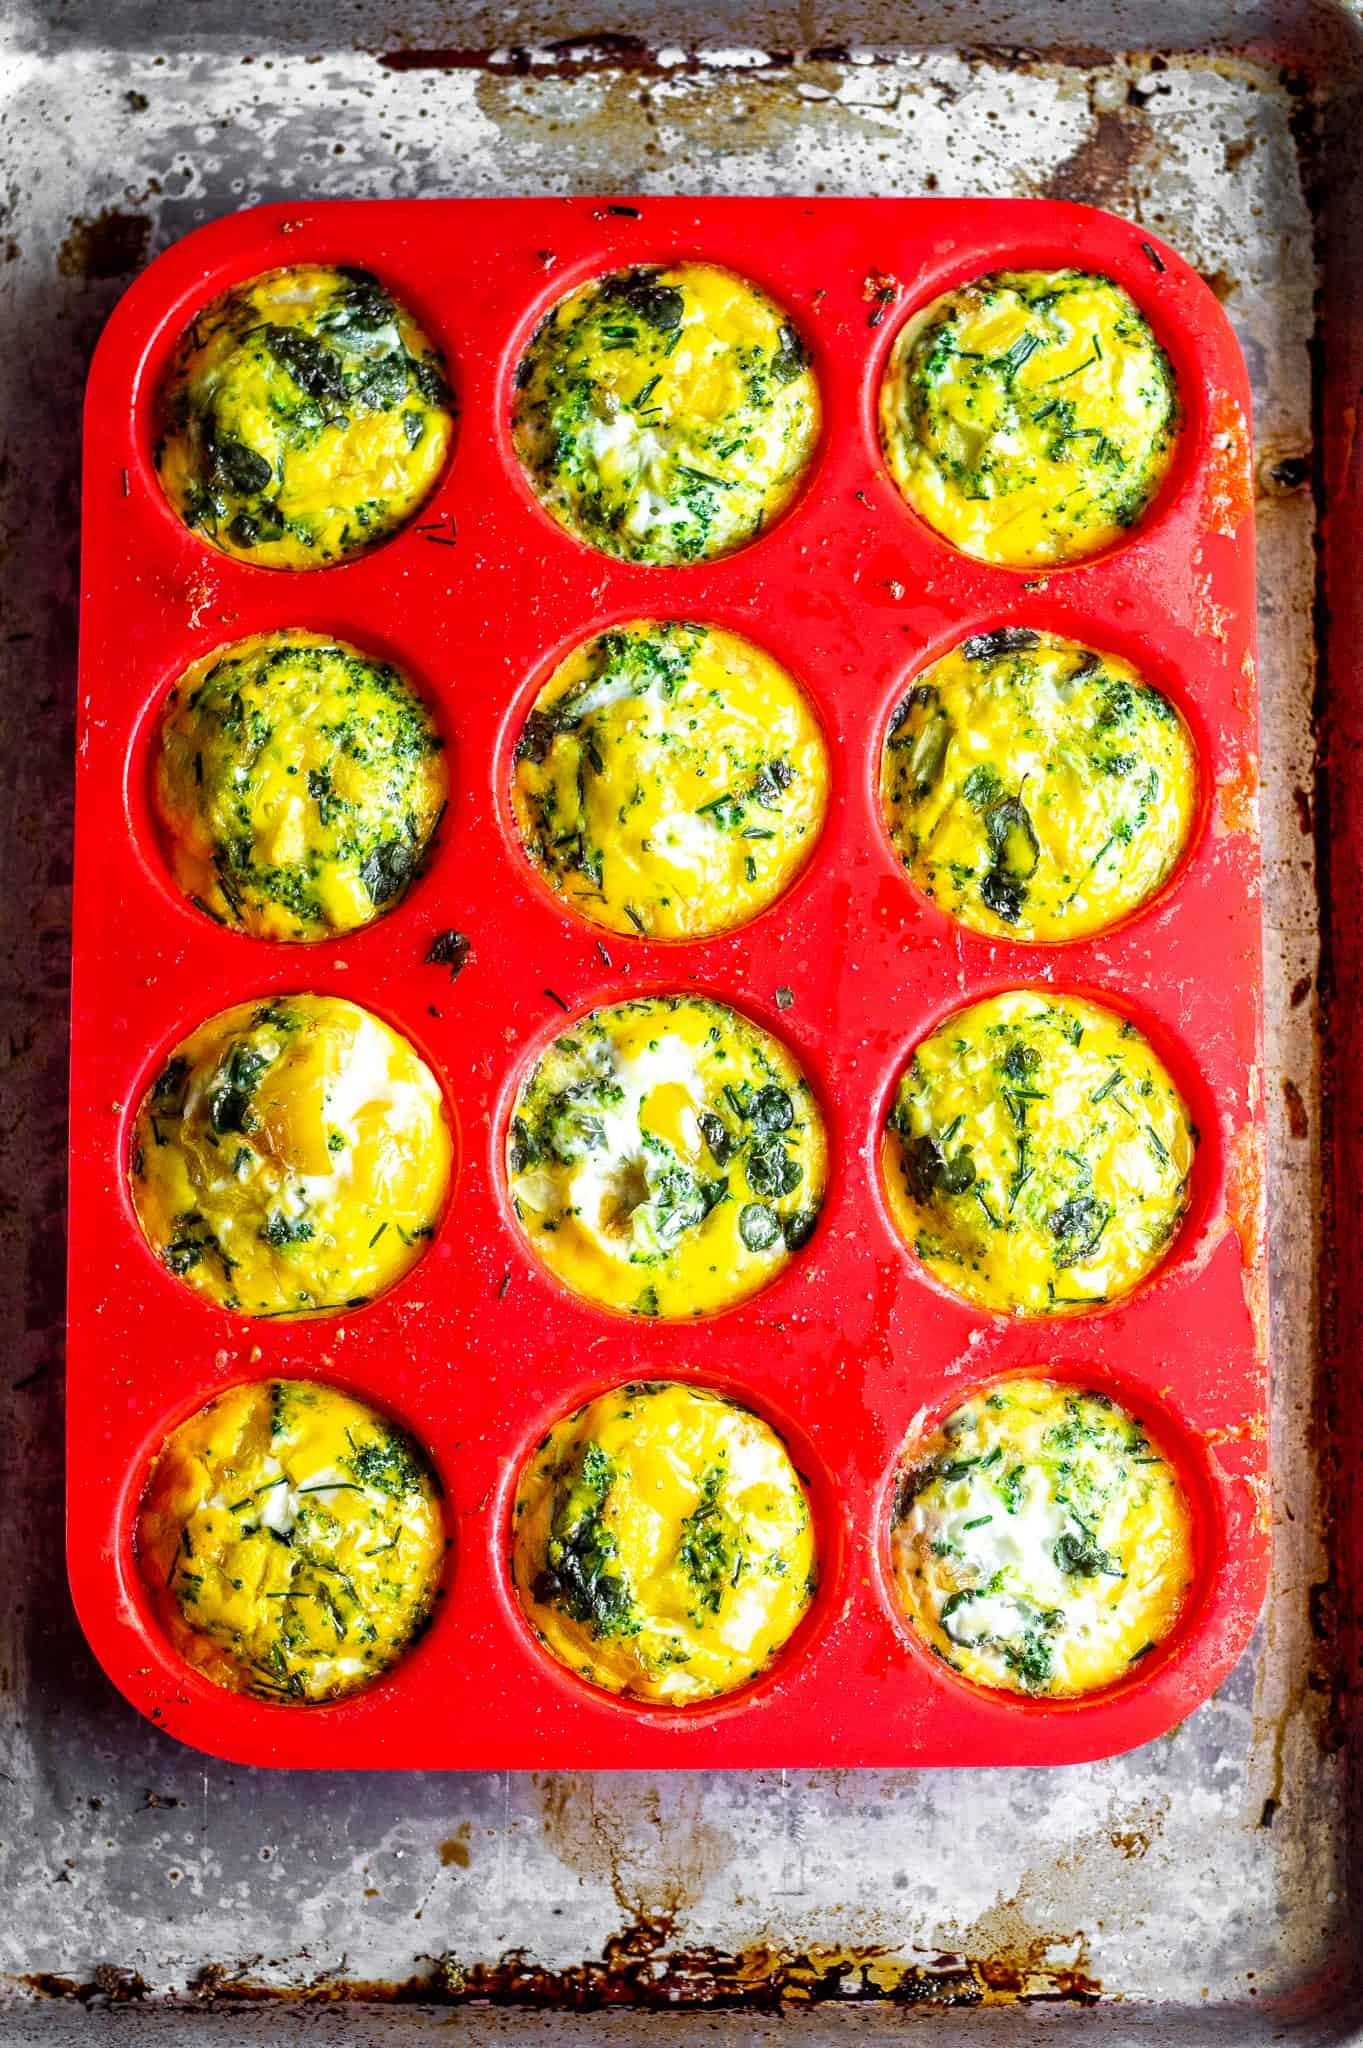 Breakfast Herb and Vegetable Egg Muffins #lowfodmap #glutenfree #dairyfree #tararochfordnutrition